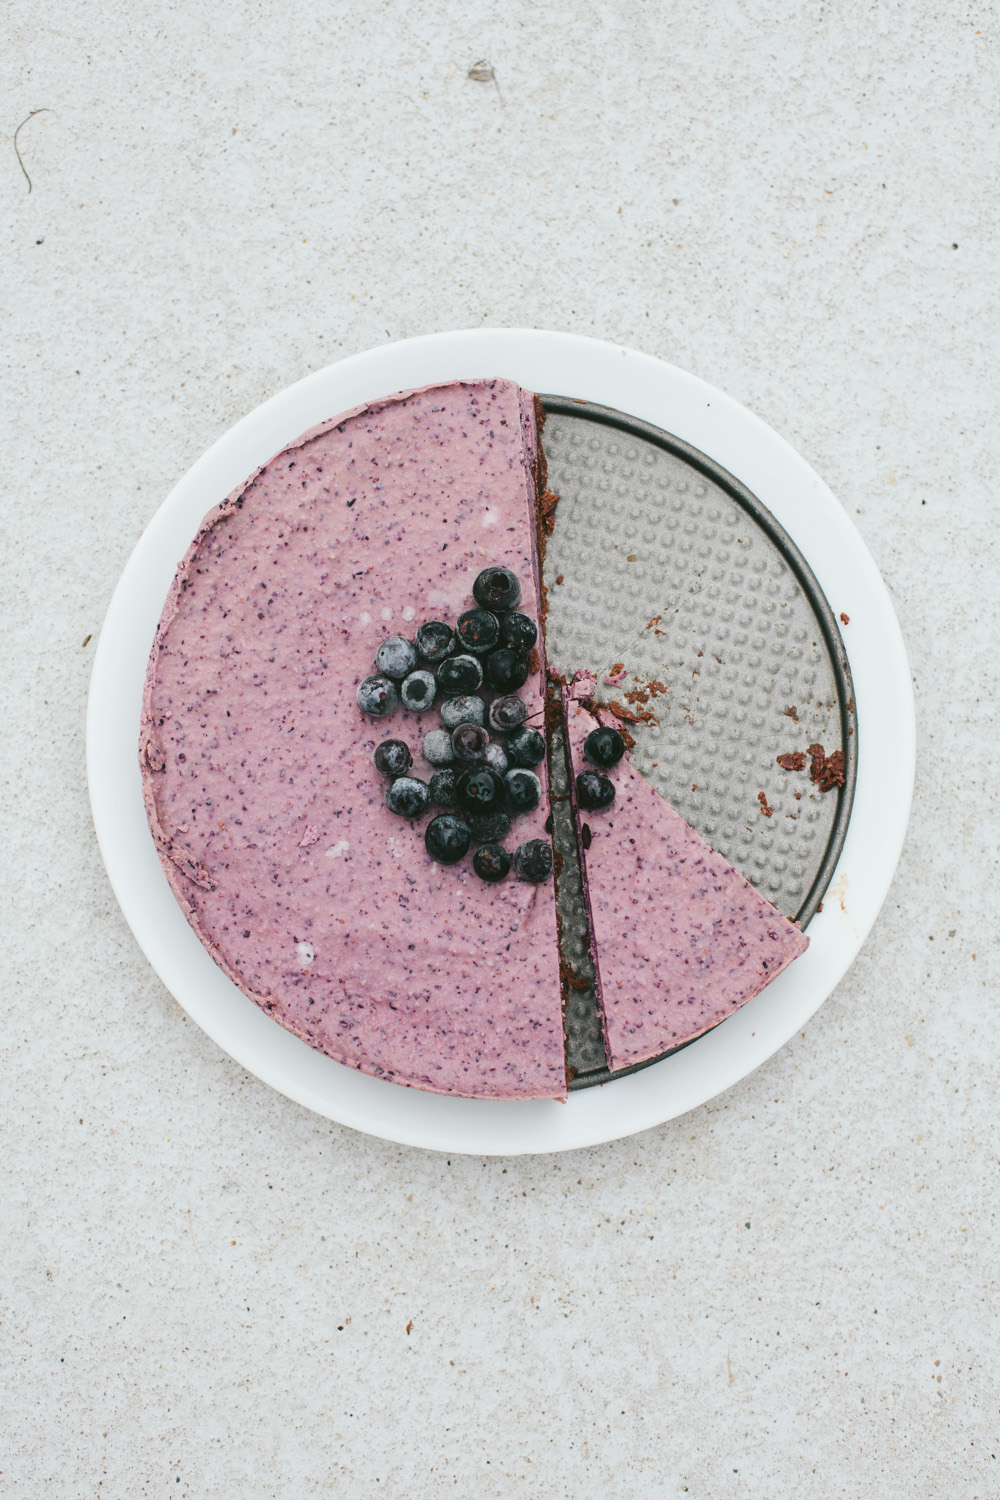 Raw Blueberry Pie / Go Eat Your Bread with Joy